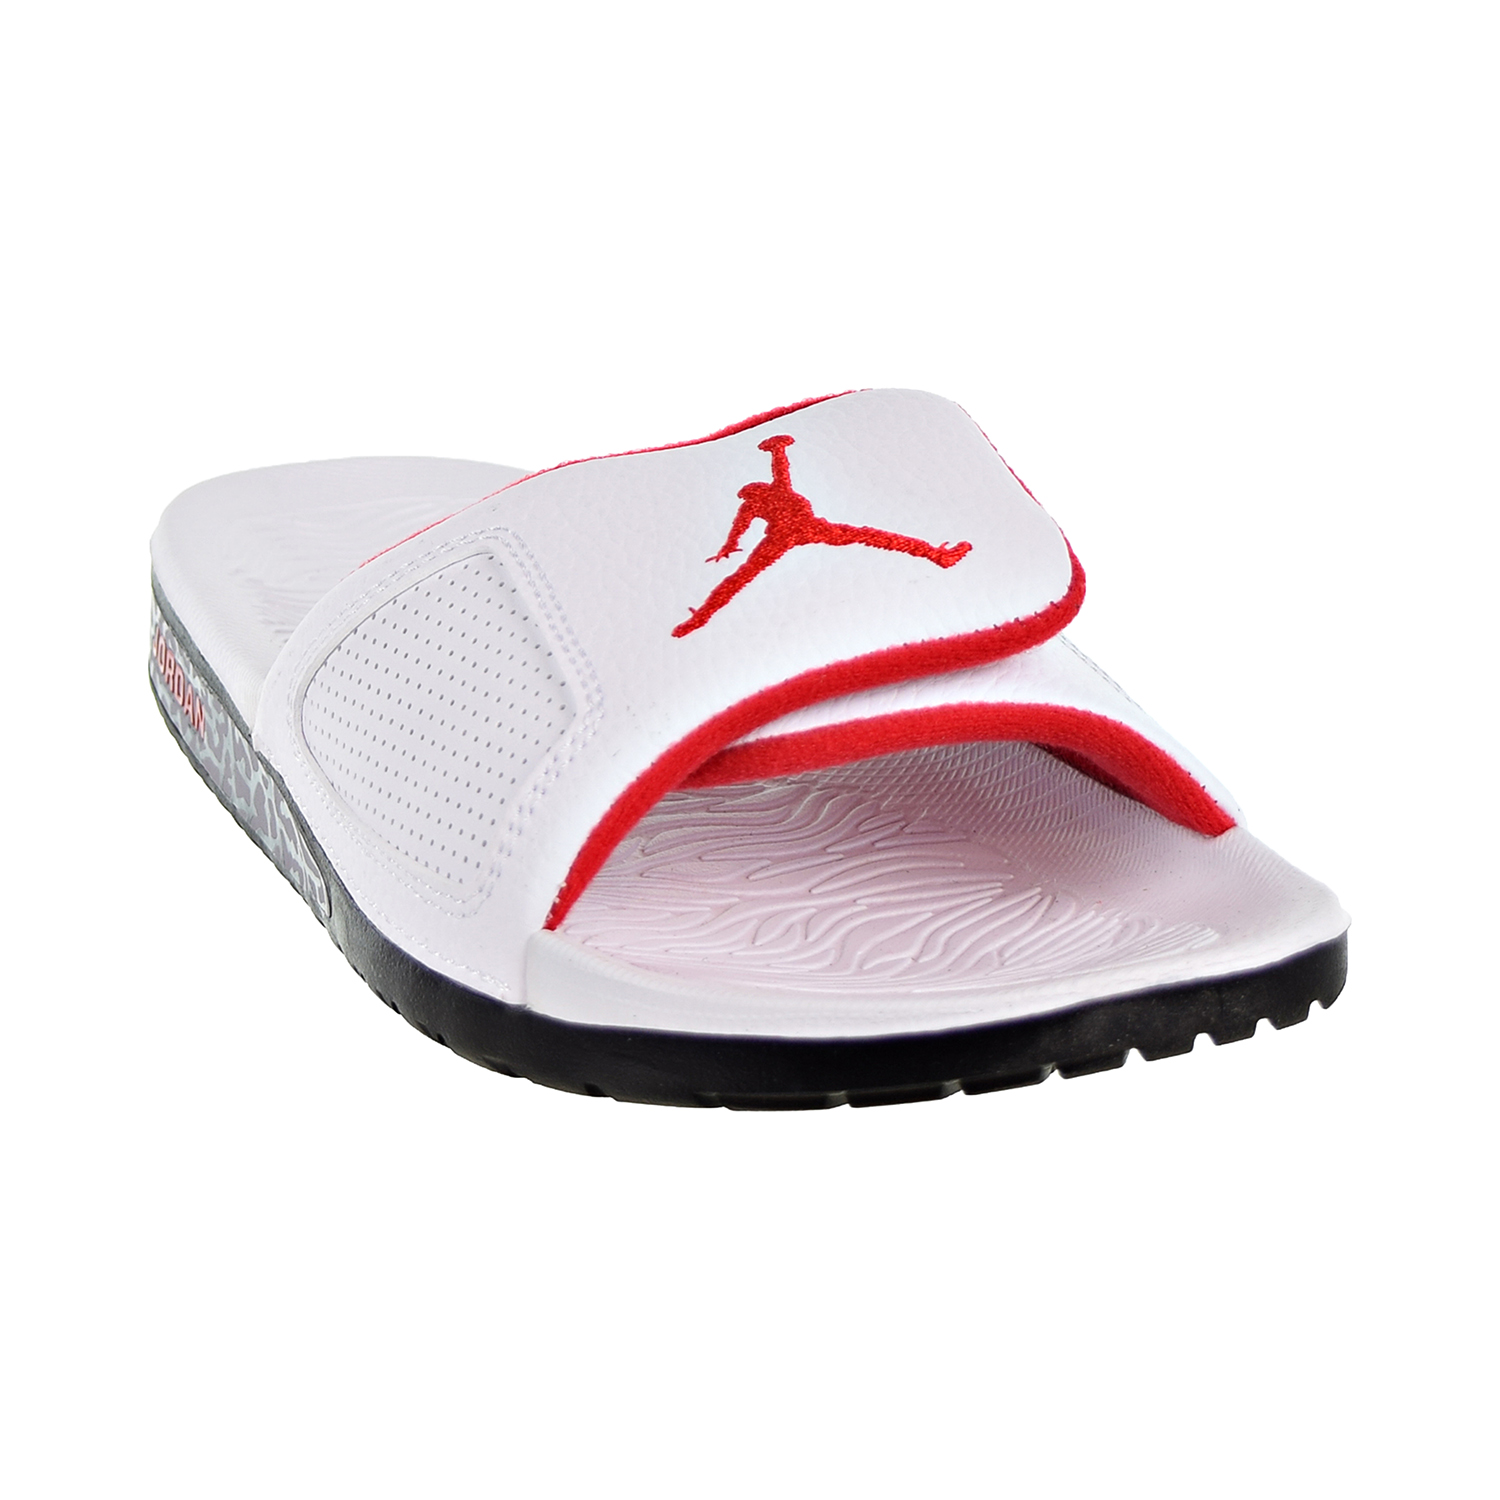 san francisco a2b28 3b2d8 Details about Jordan Hydro III Retro Men s Slides White University Red Black  854556-103